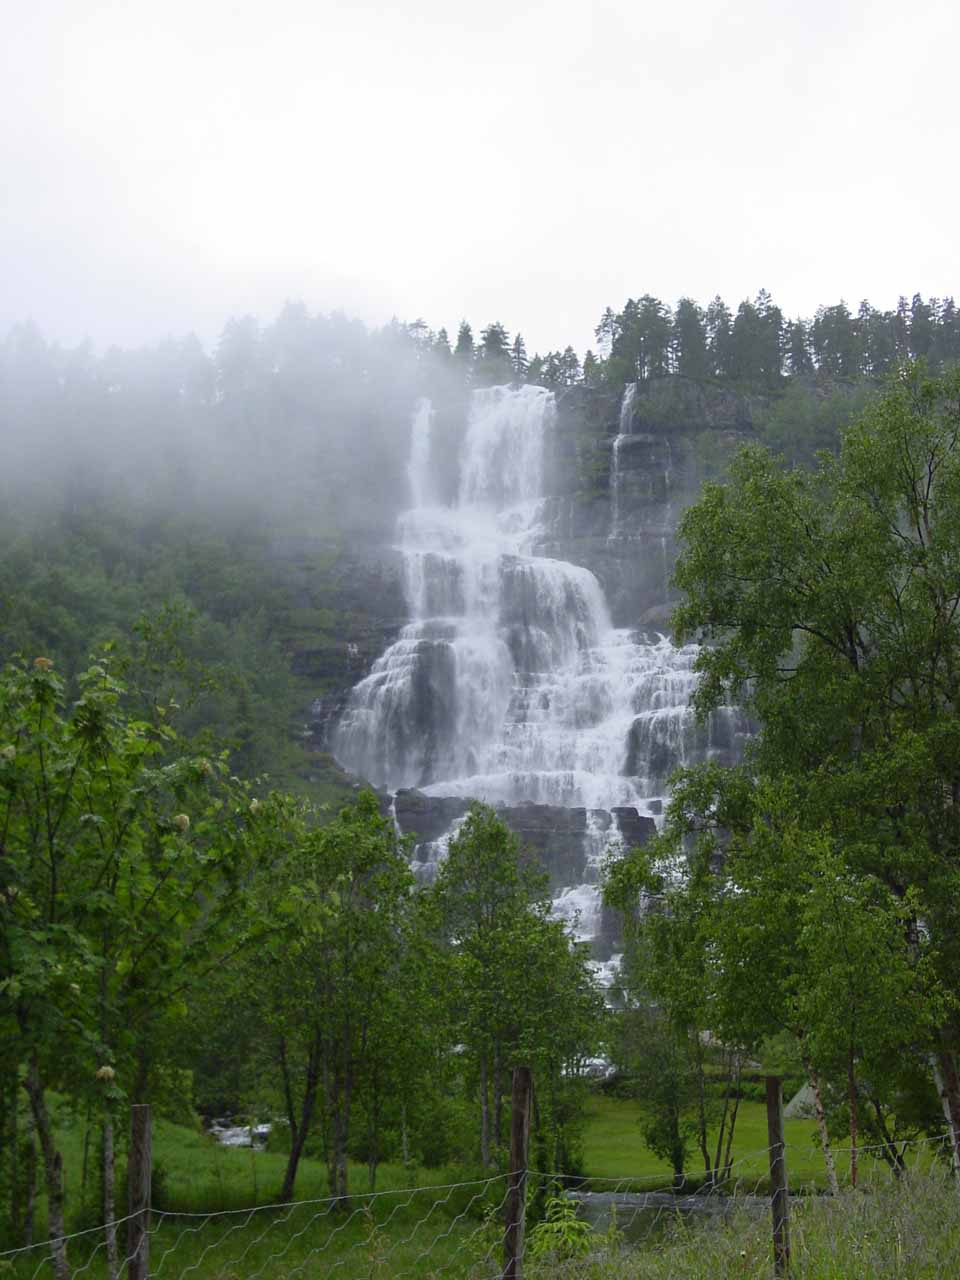 First look at Tvindefossen